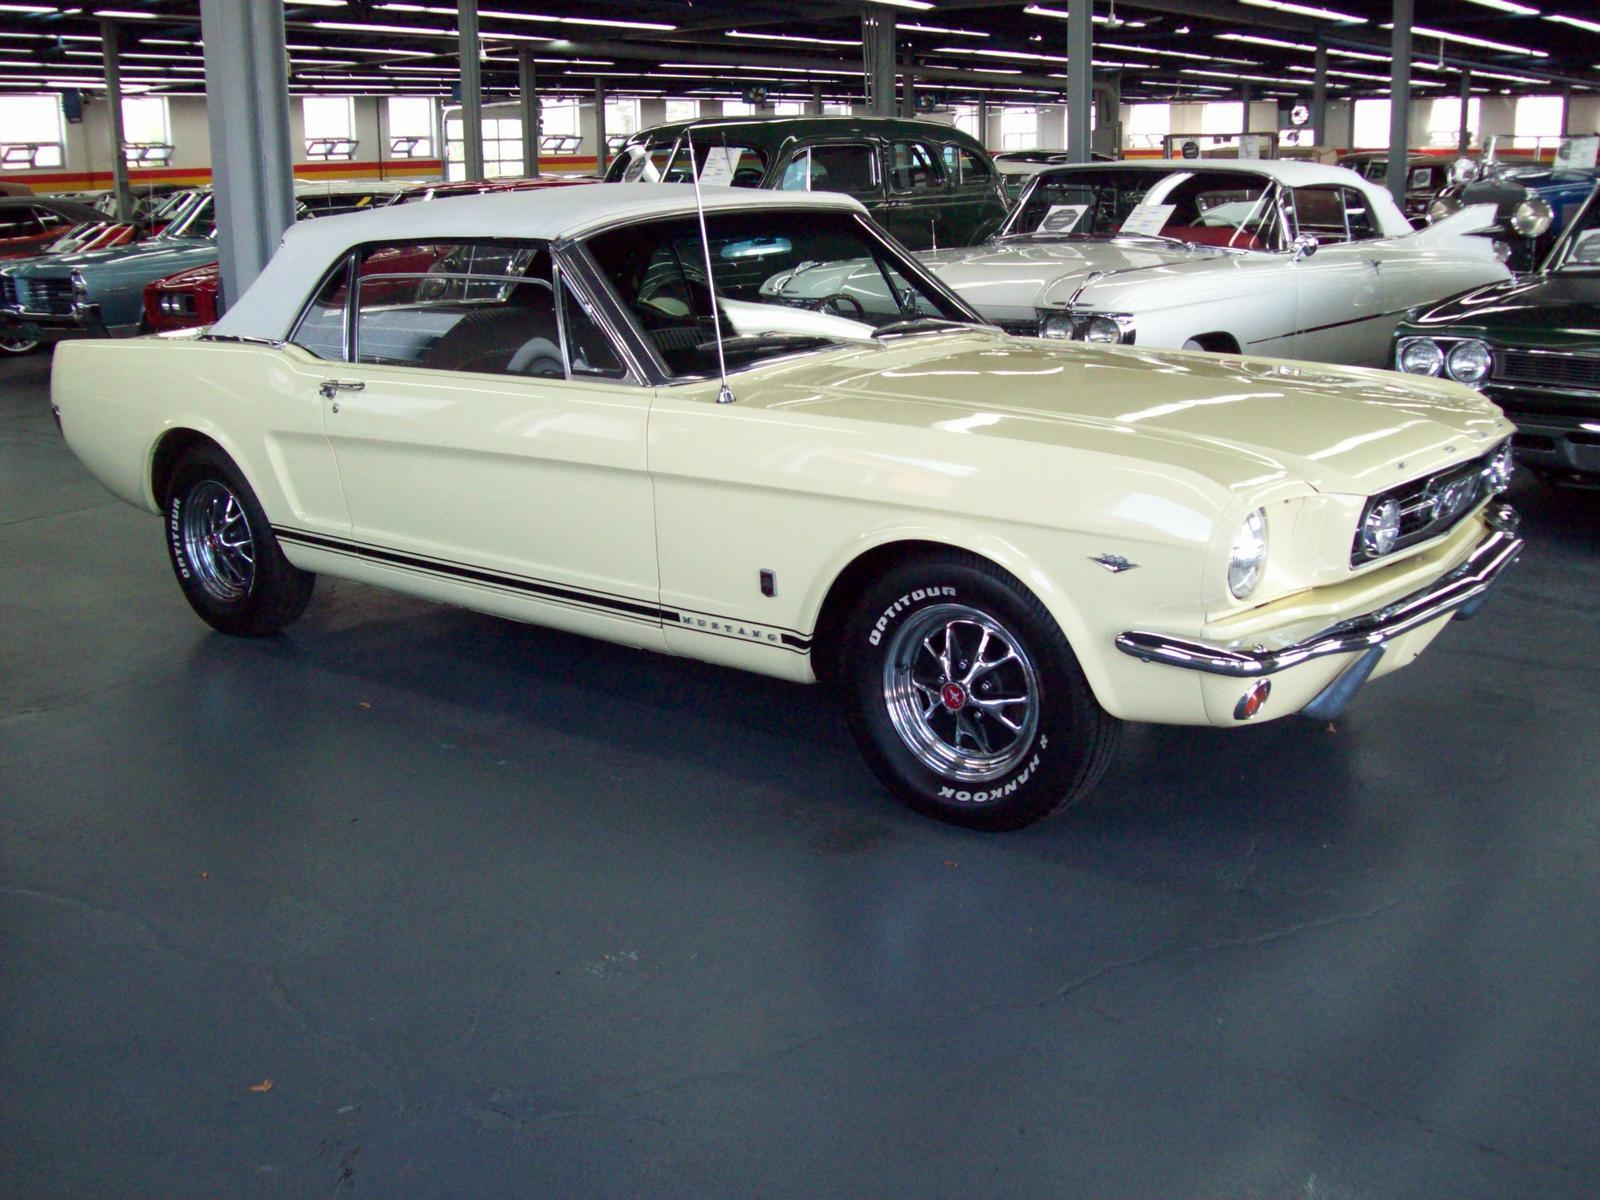 Used 1966 ford mustang gt for sale in saint léonard john scotti classic cars h1r 2y7 2070738